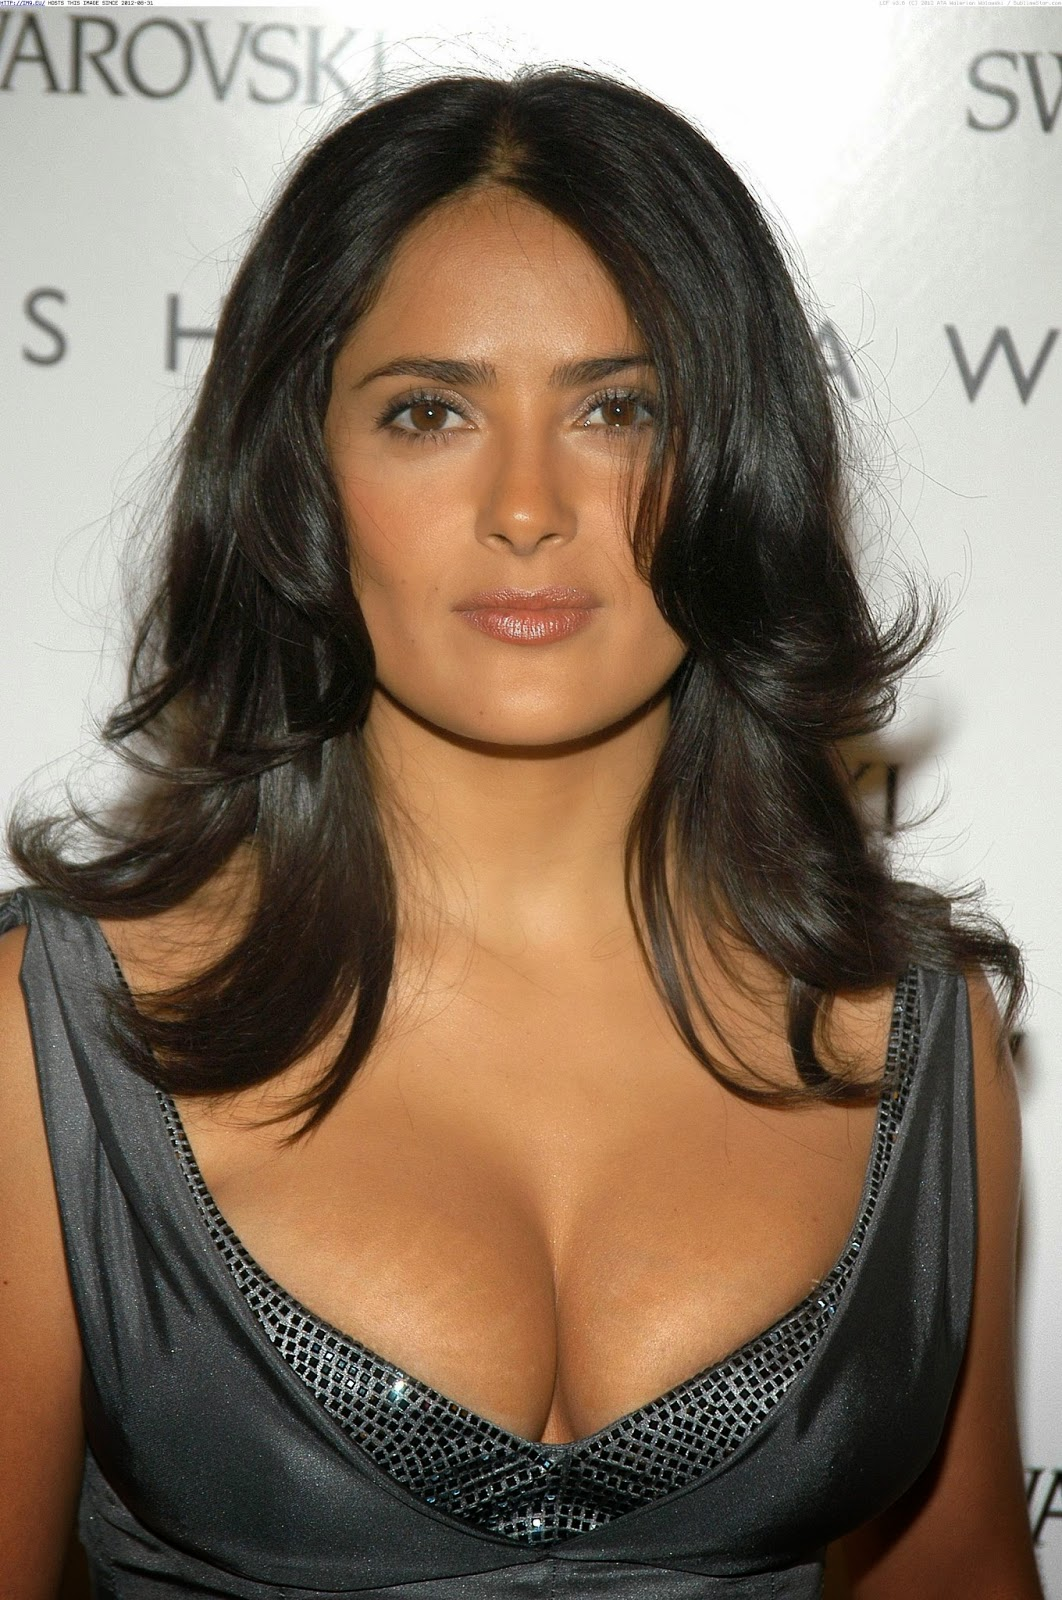 Actress salma hayek hot and spicy cleavages show stills for Very best images